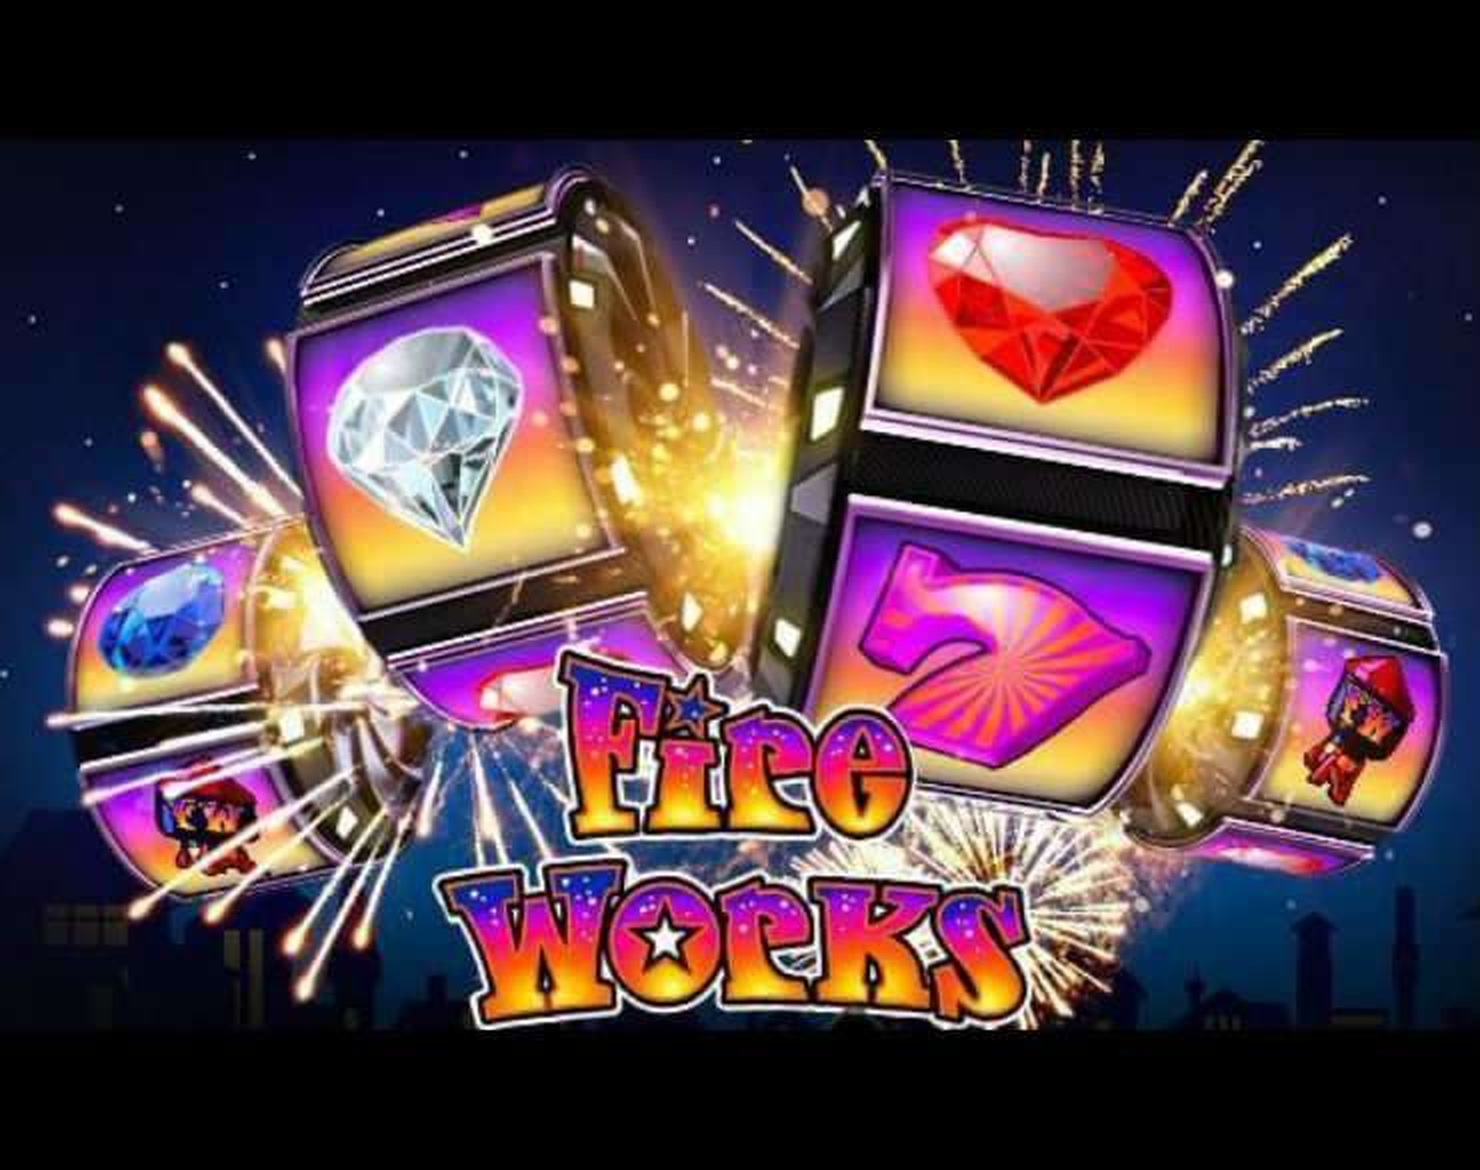 The Fireworks Online Slot Demo Game by Realistic Games